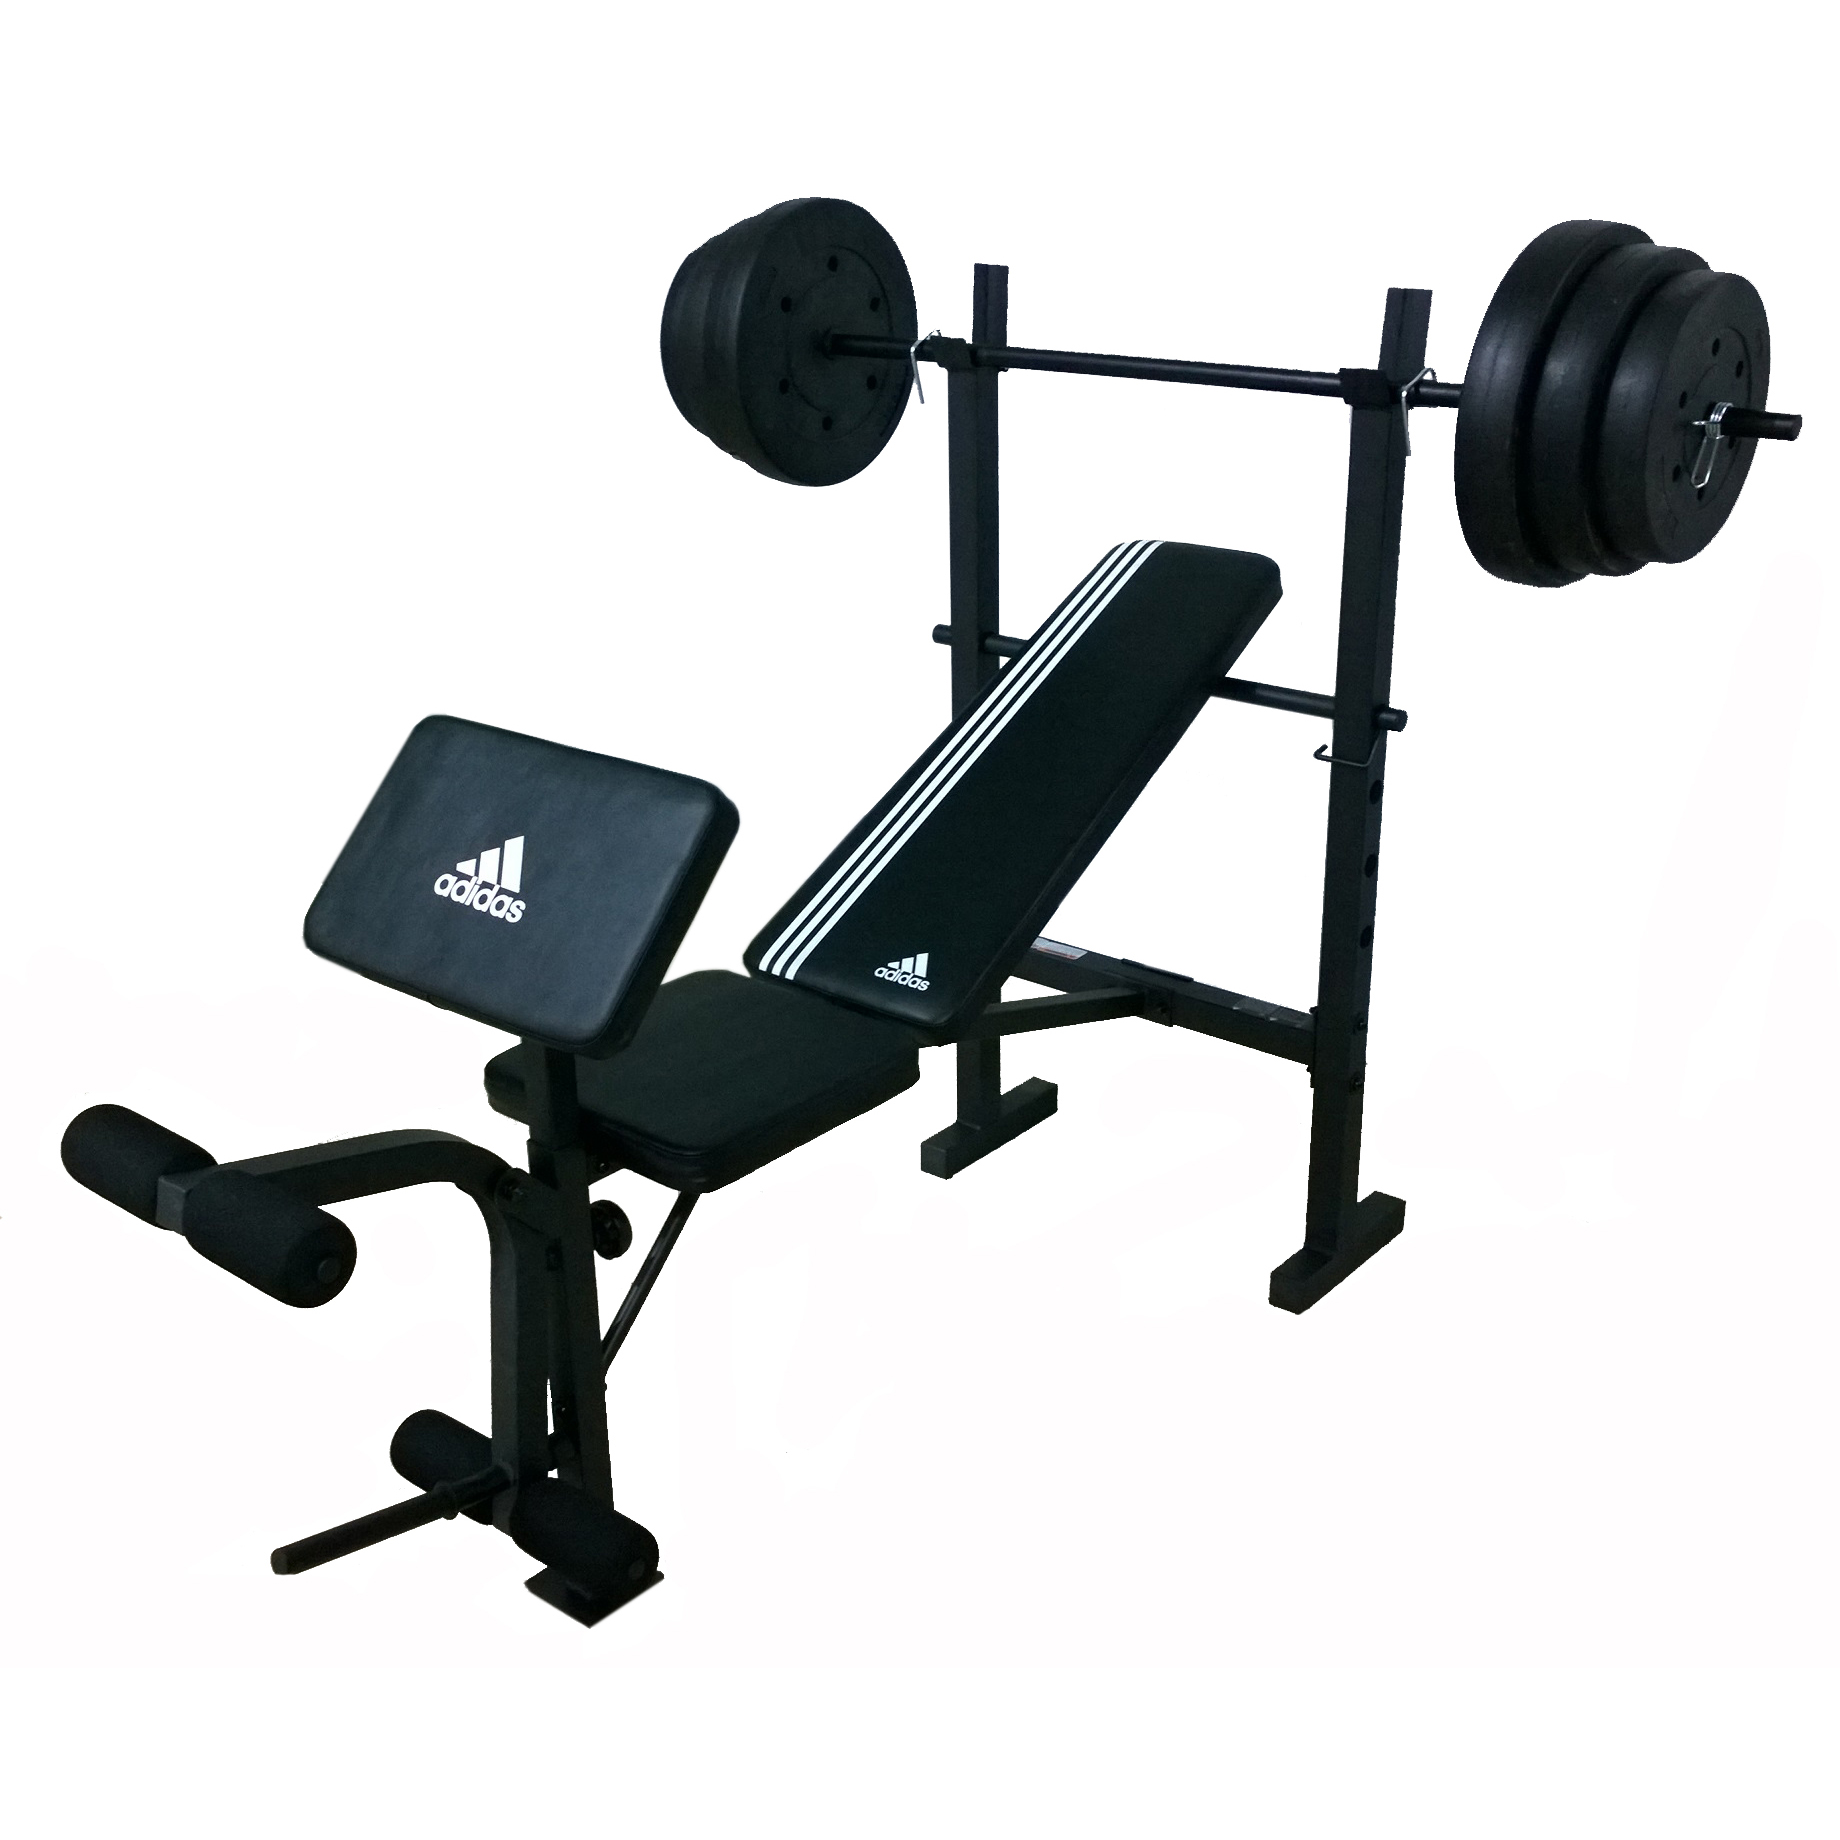 Buy cheap bench presses compare weight training prices for best uk deals Bench and weight set